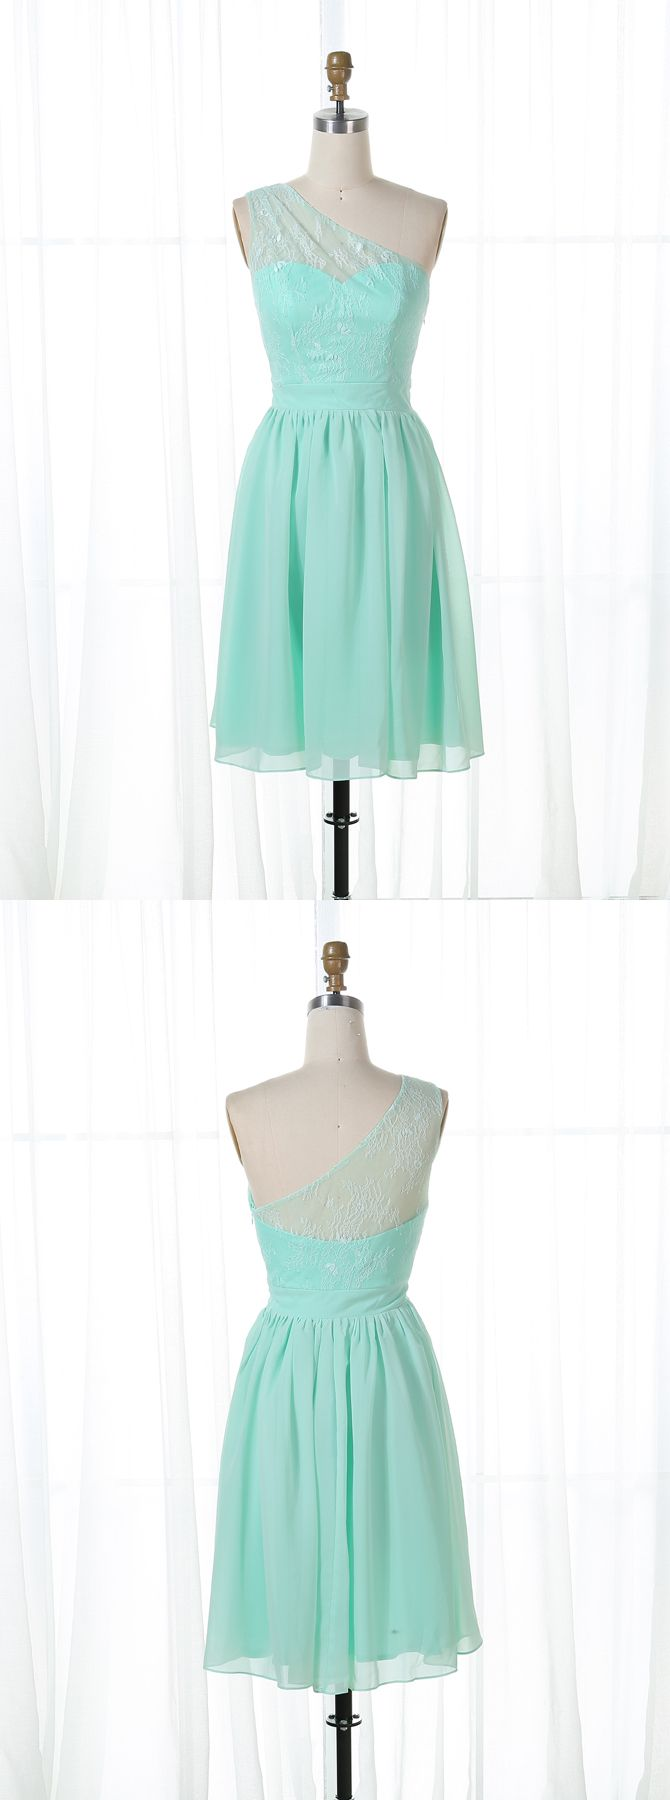 One shoulder mint green homecoming dressessimple tulle short prom